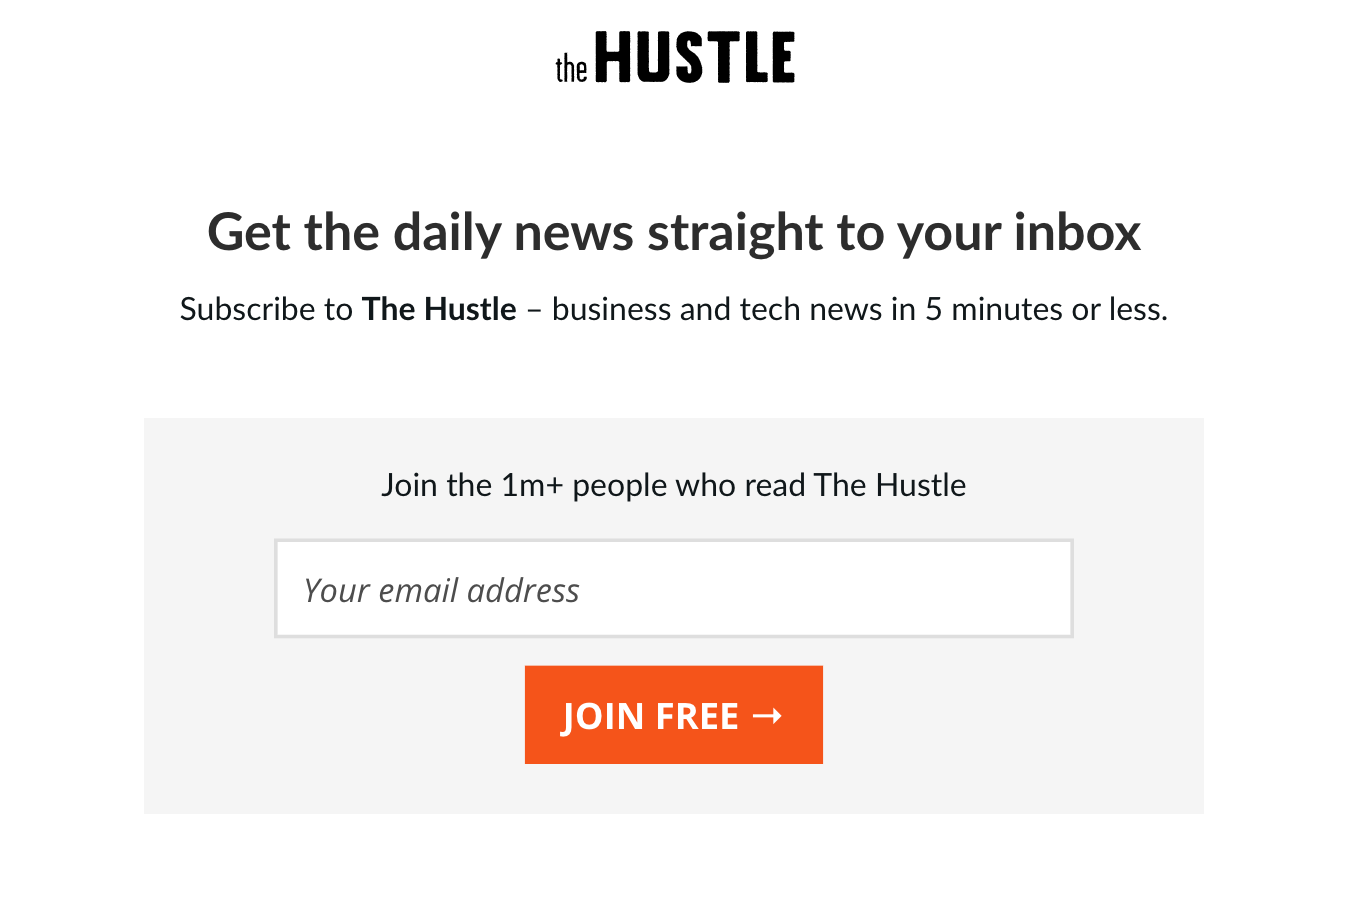 the hustle newsletter